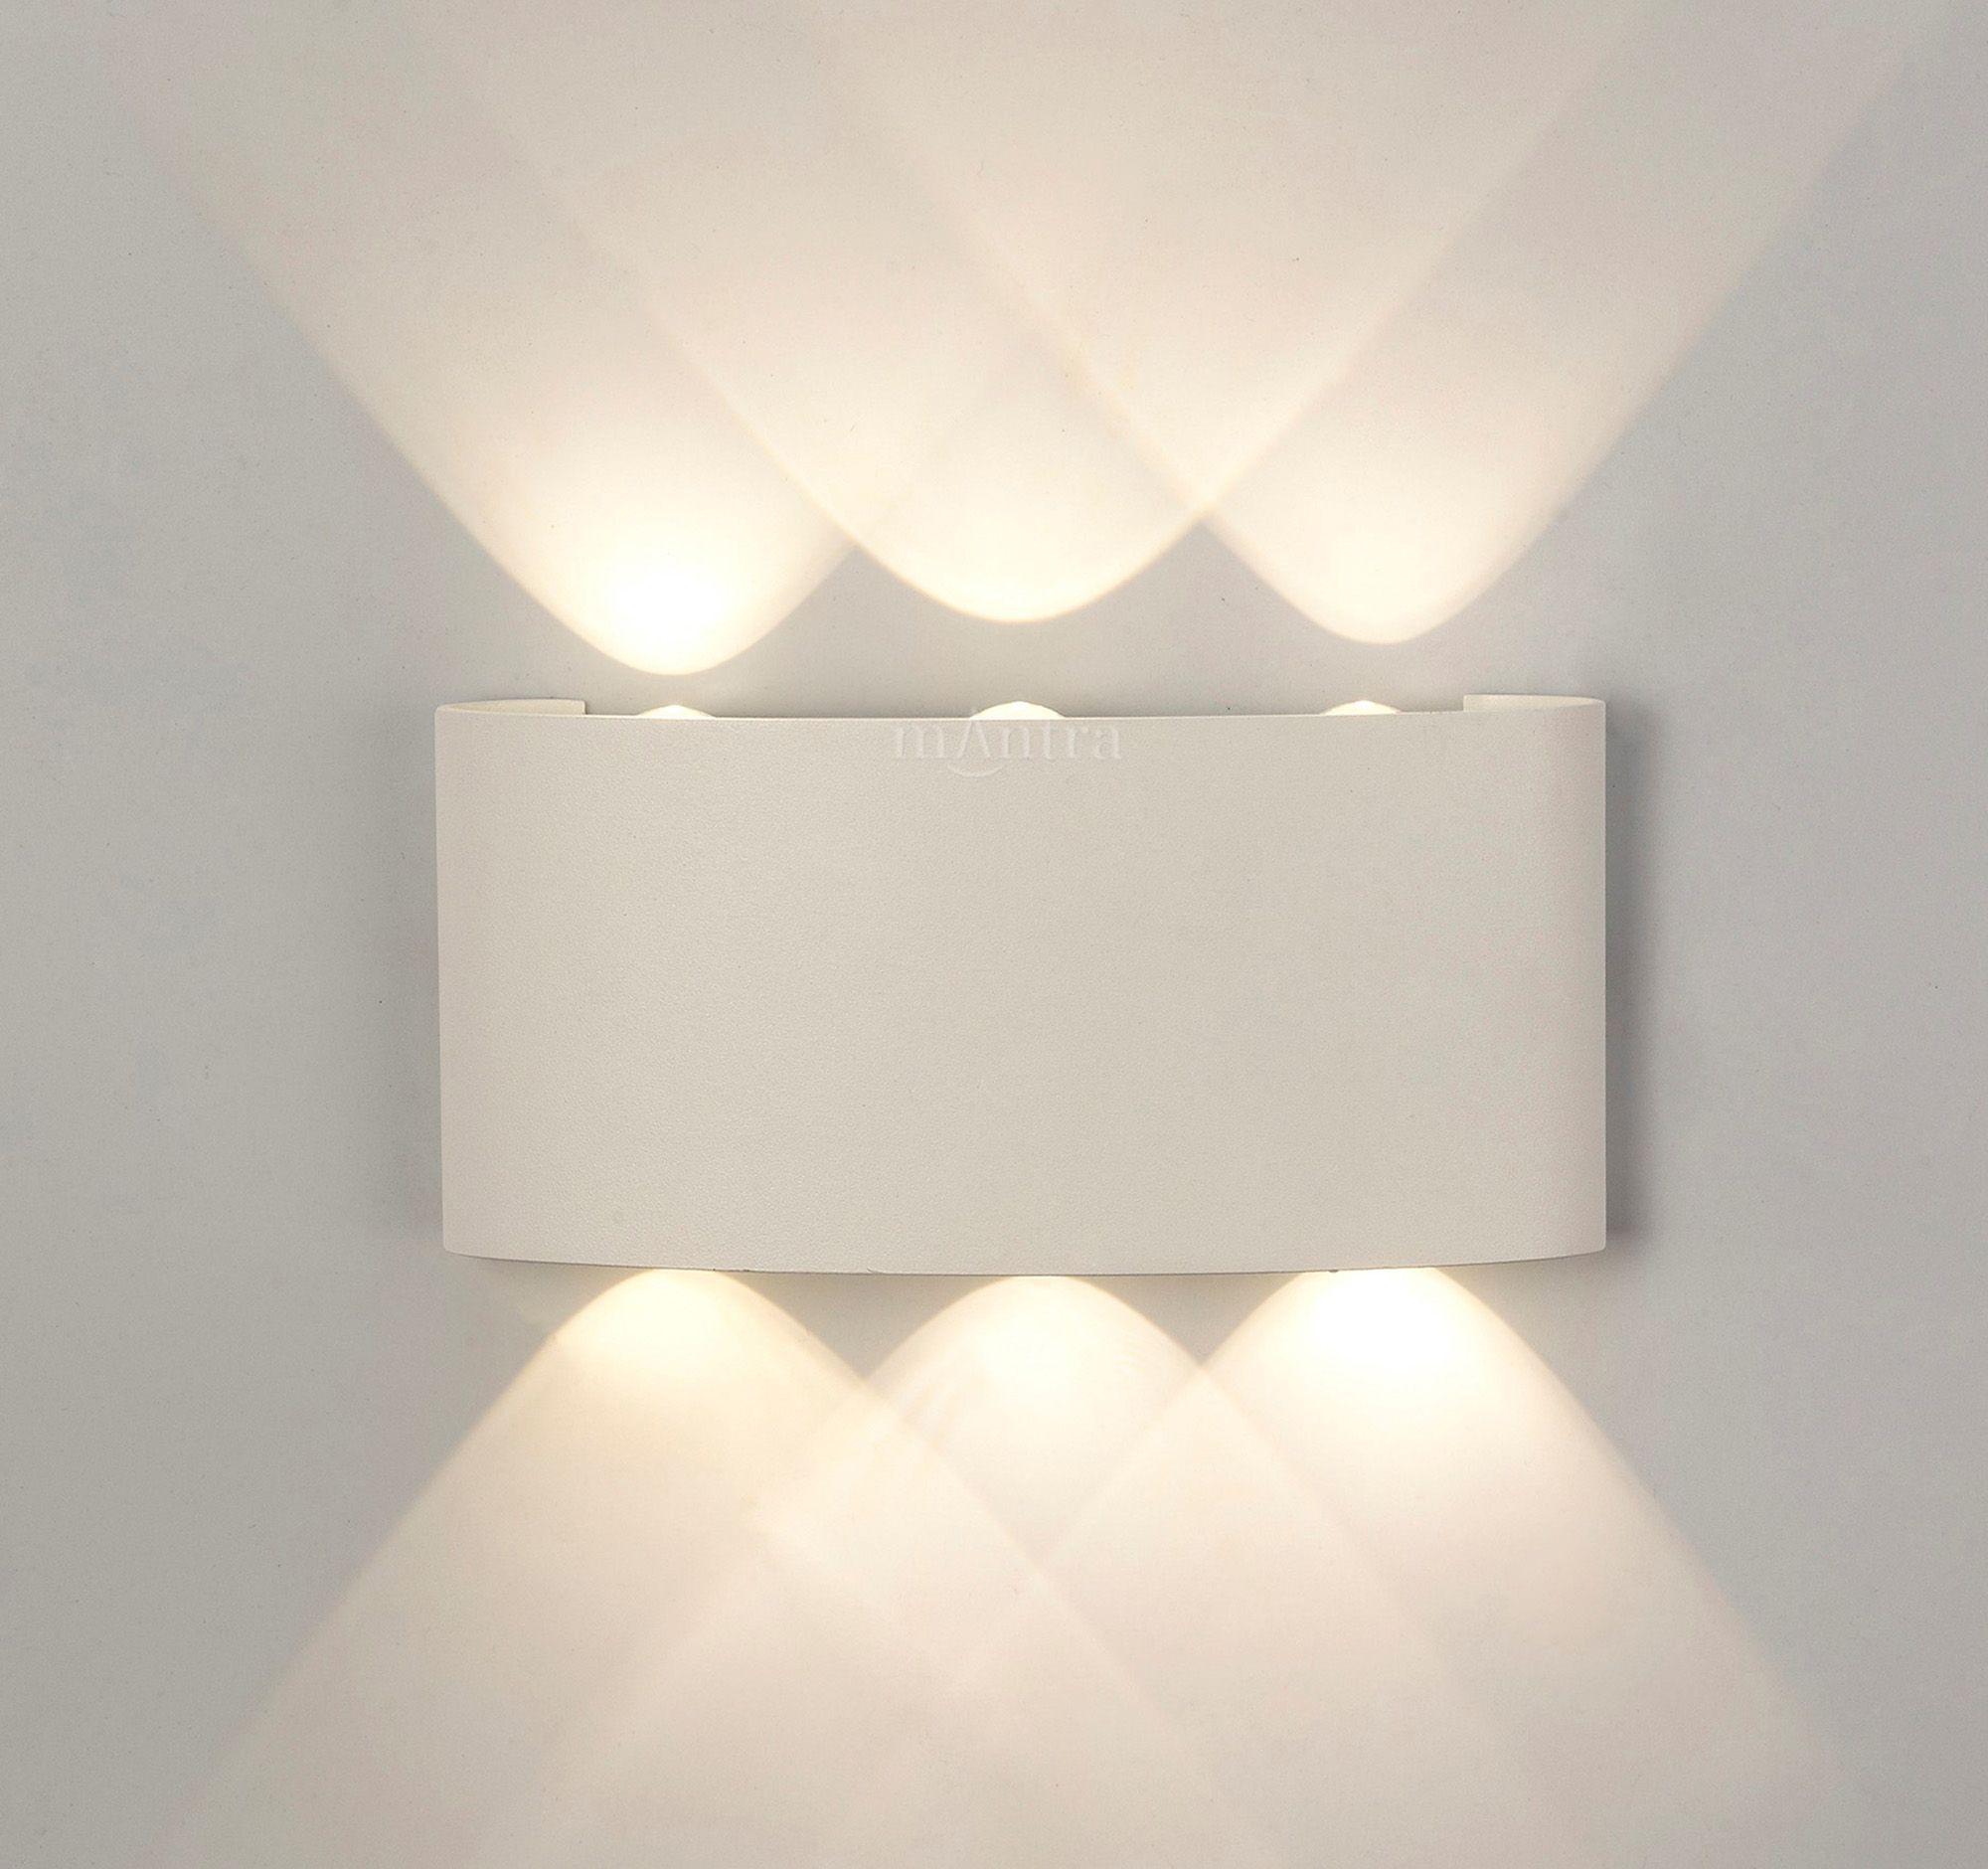 Arcs Exterior Lights Mantra Fusion Exterior Wall Lights